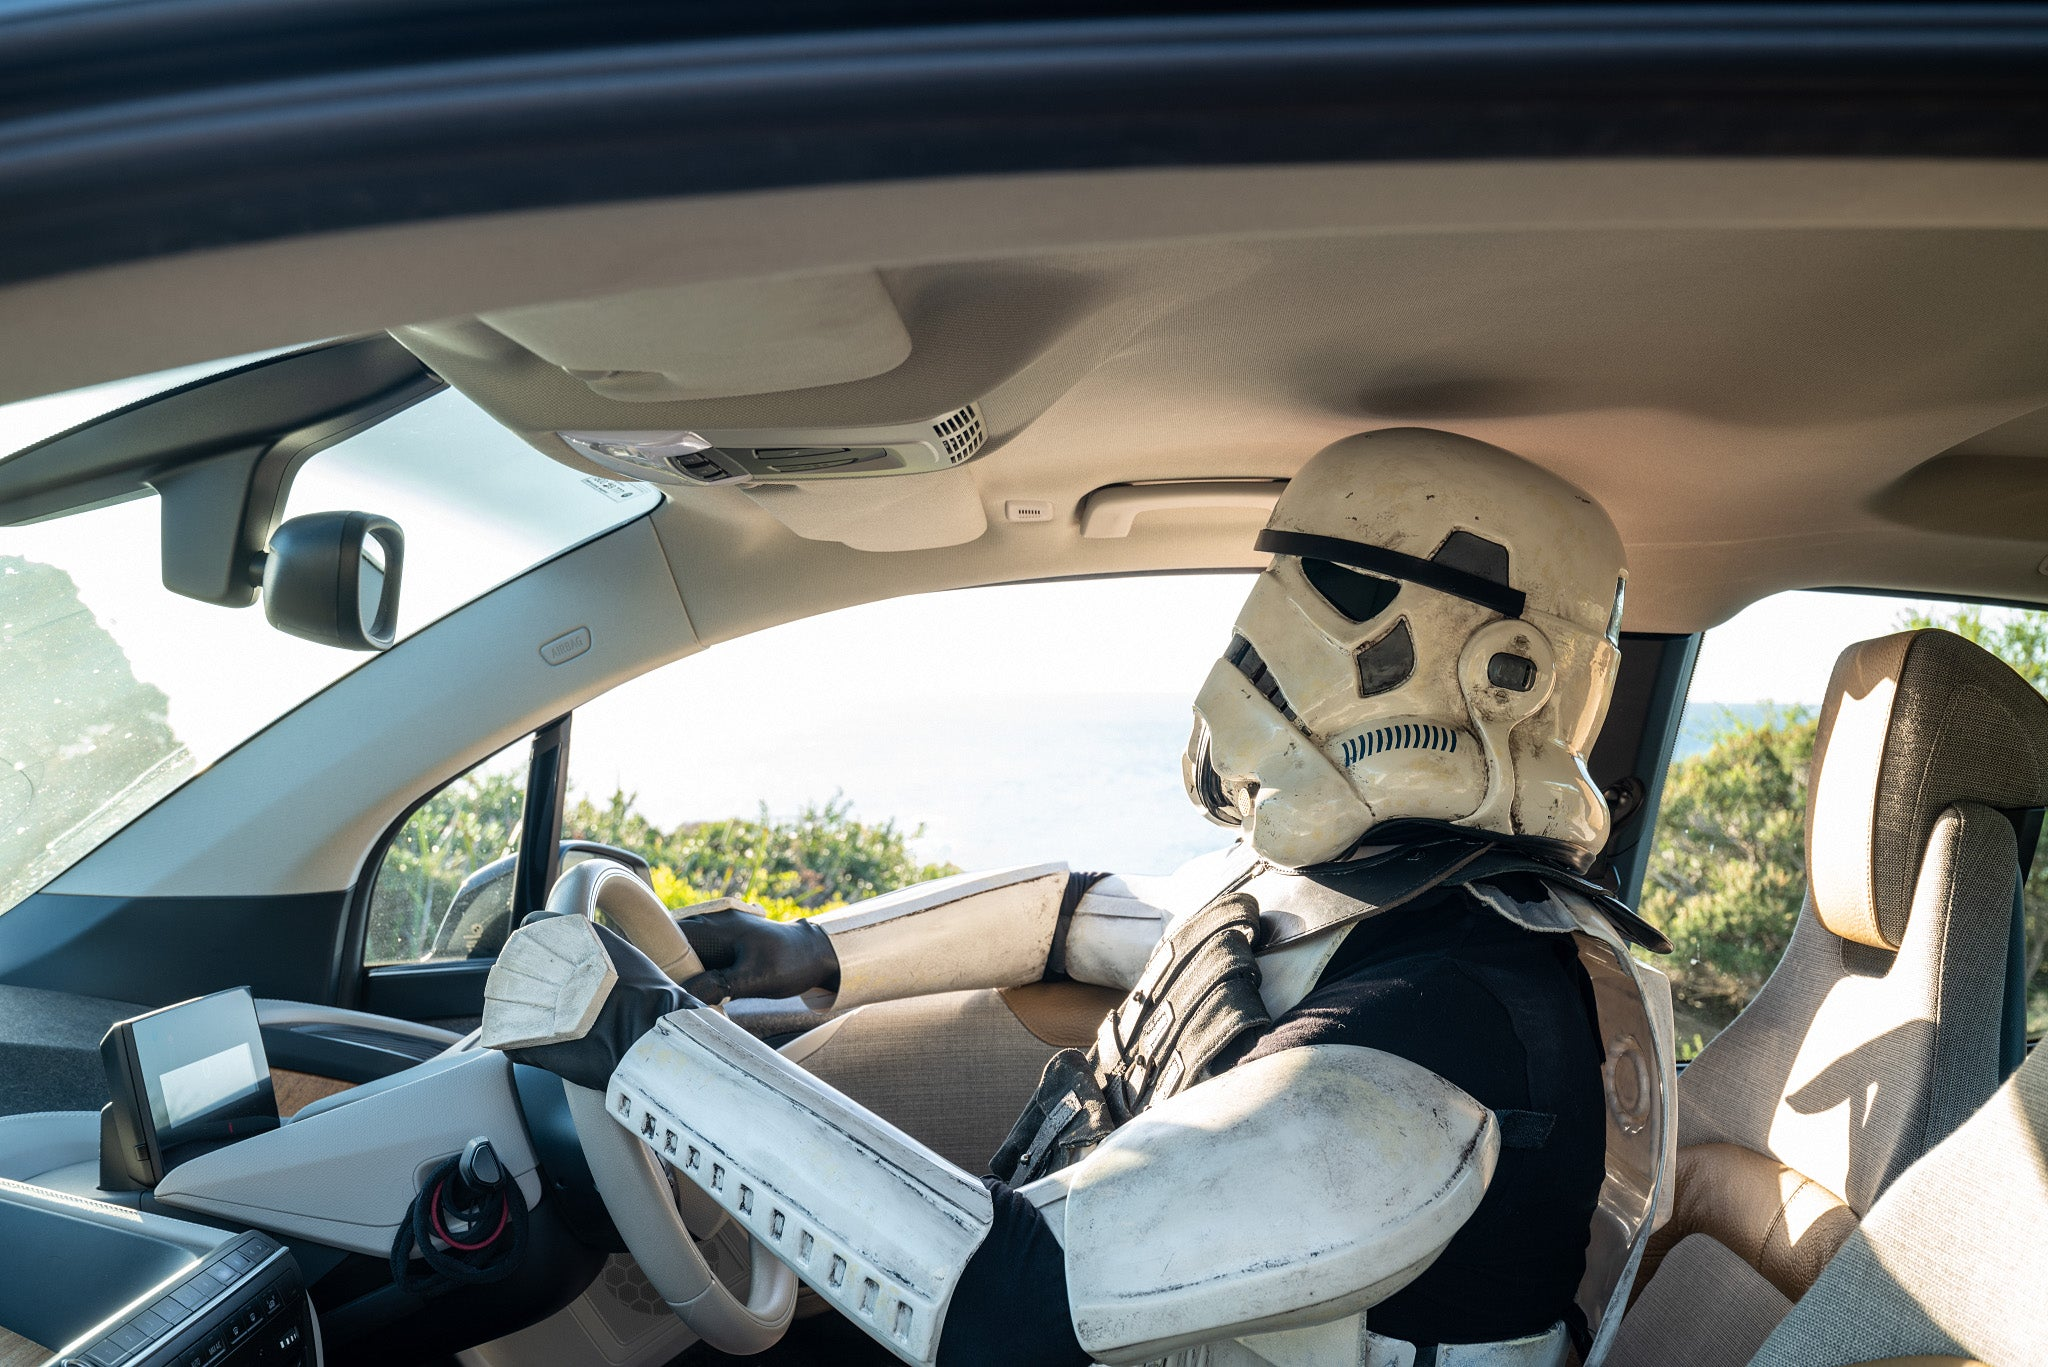 Stormtrooper driving a BMW i3 at Sugarloaf Rock in the South West of Western Australia